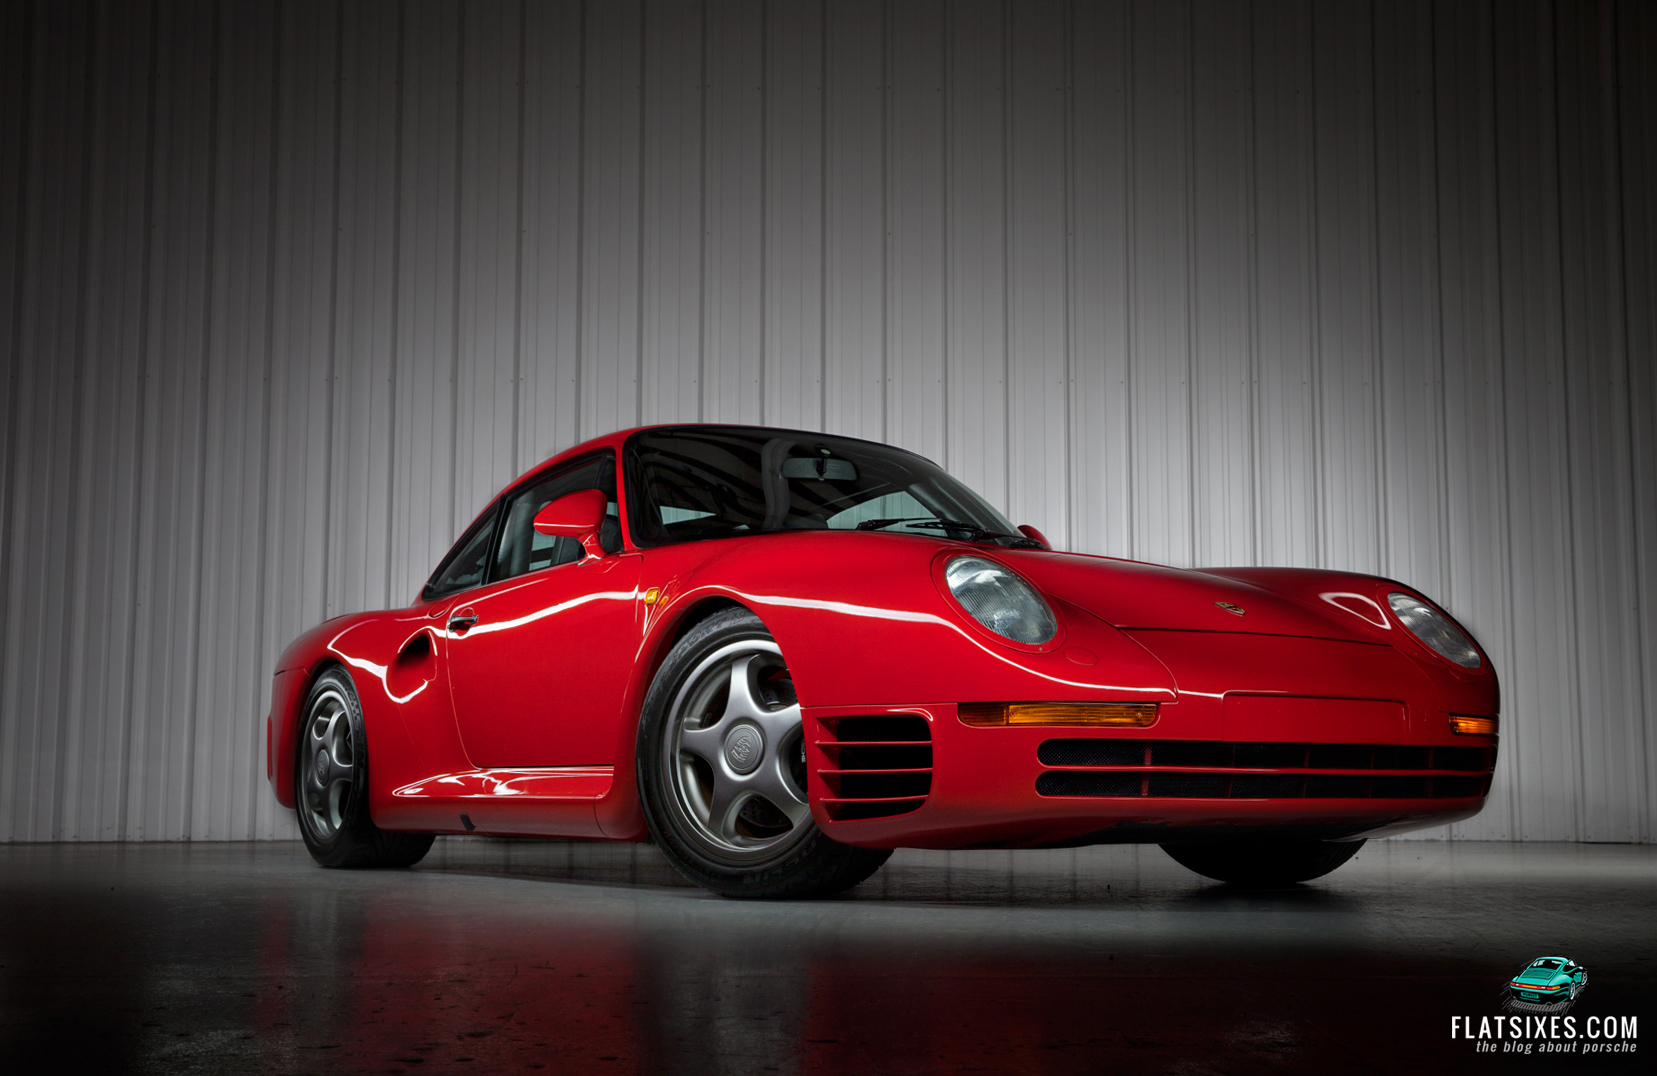 Gooding Showcases A Gorgeous Porsche 959 S For Sale